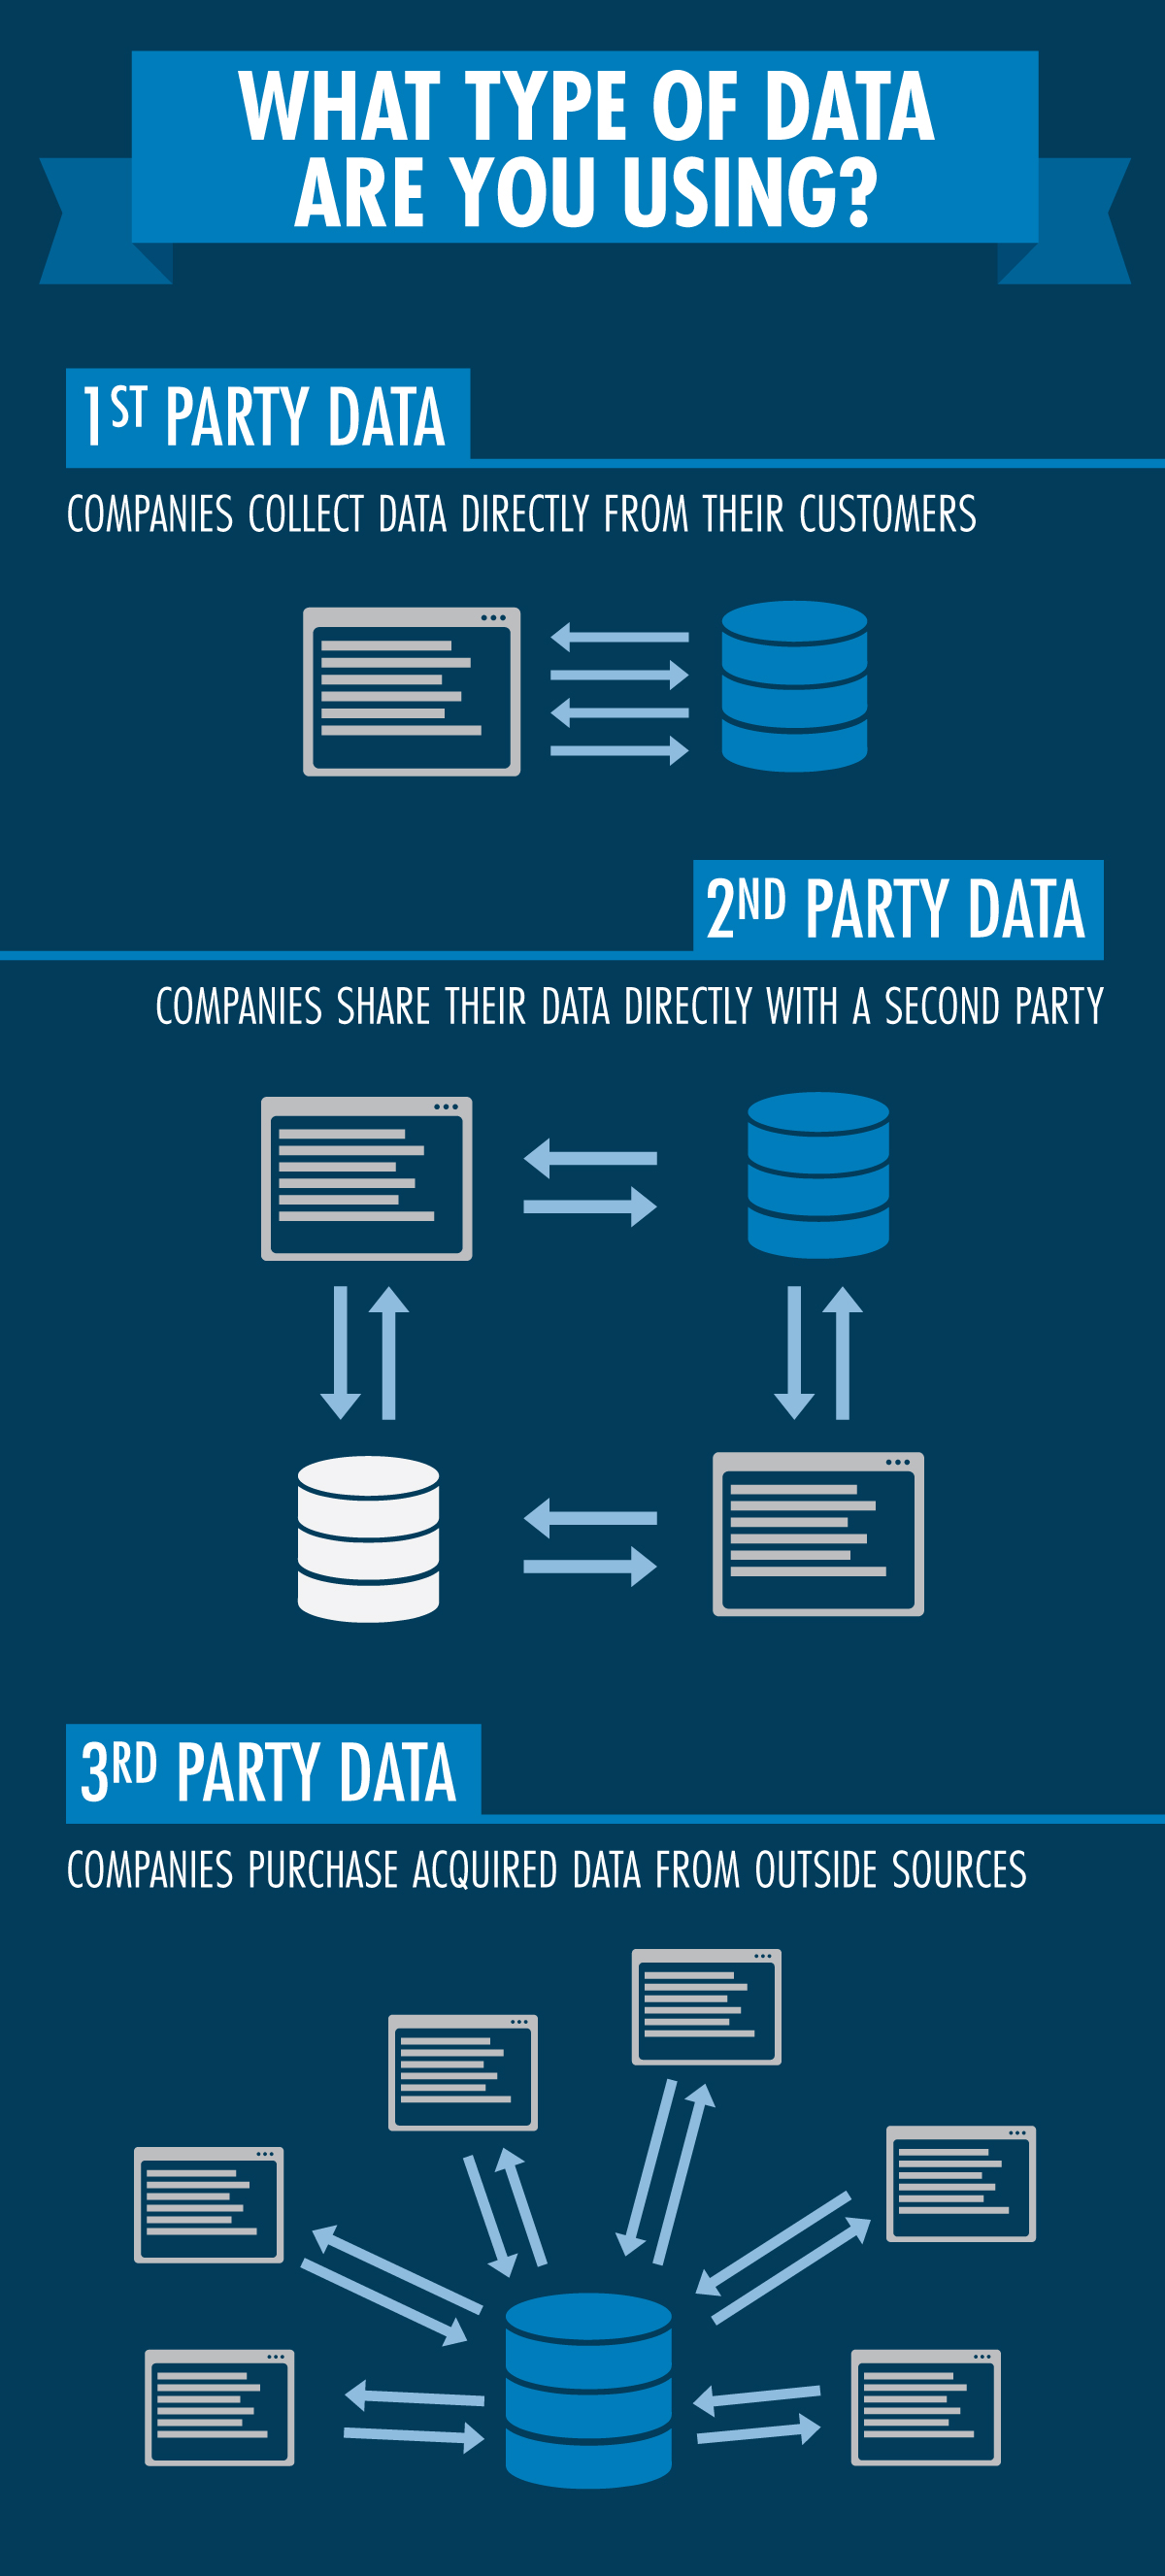 Infographic; Data Collection: parity data